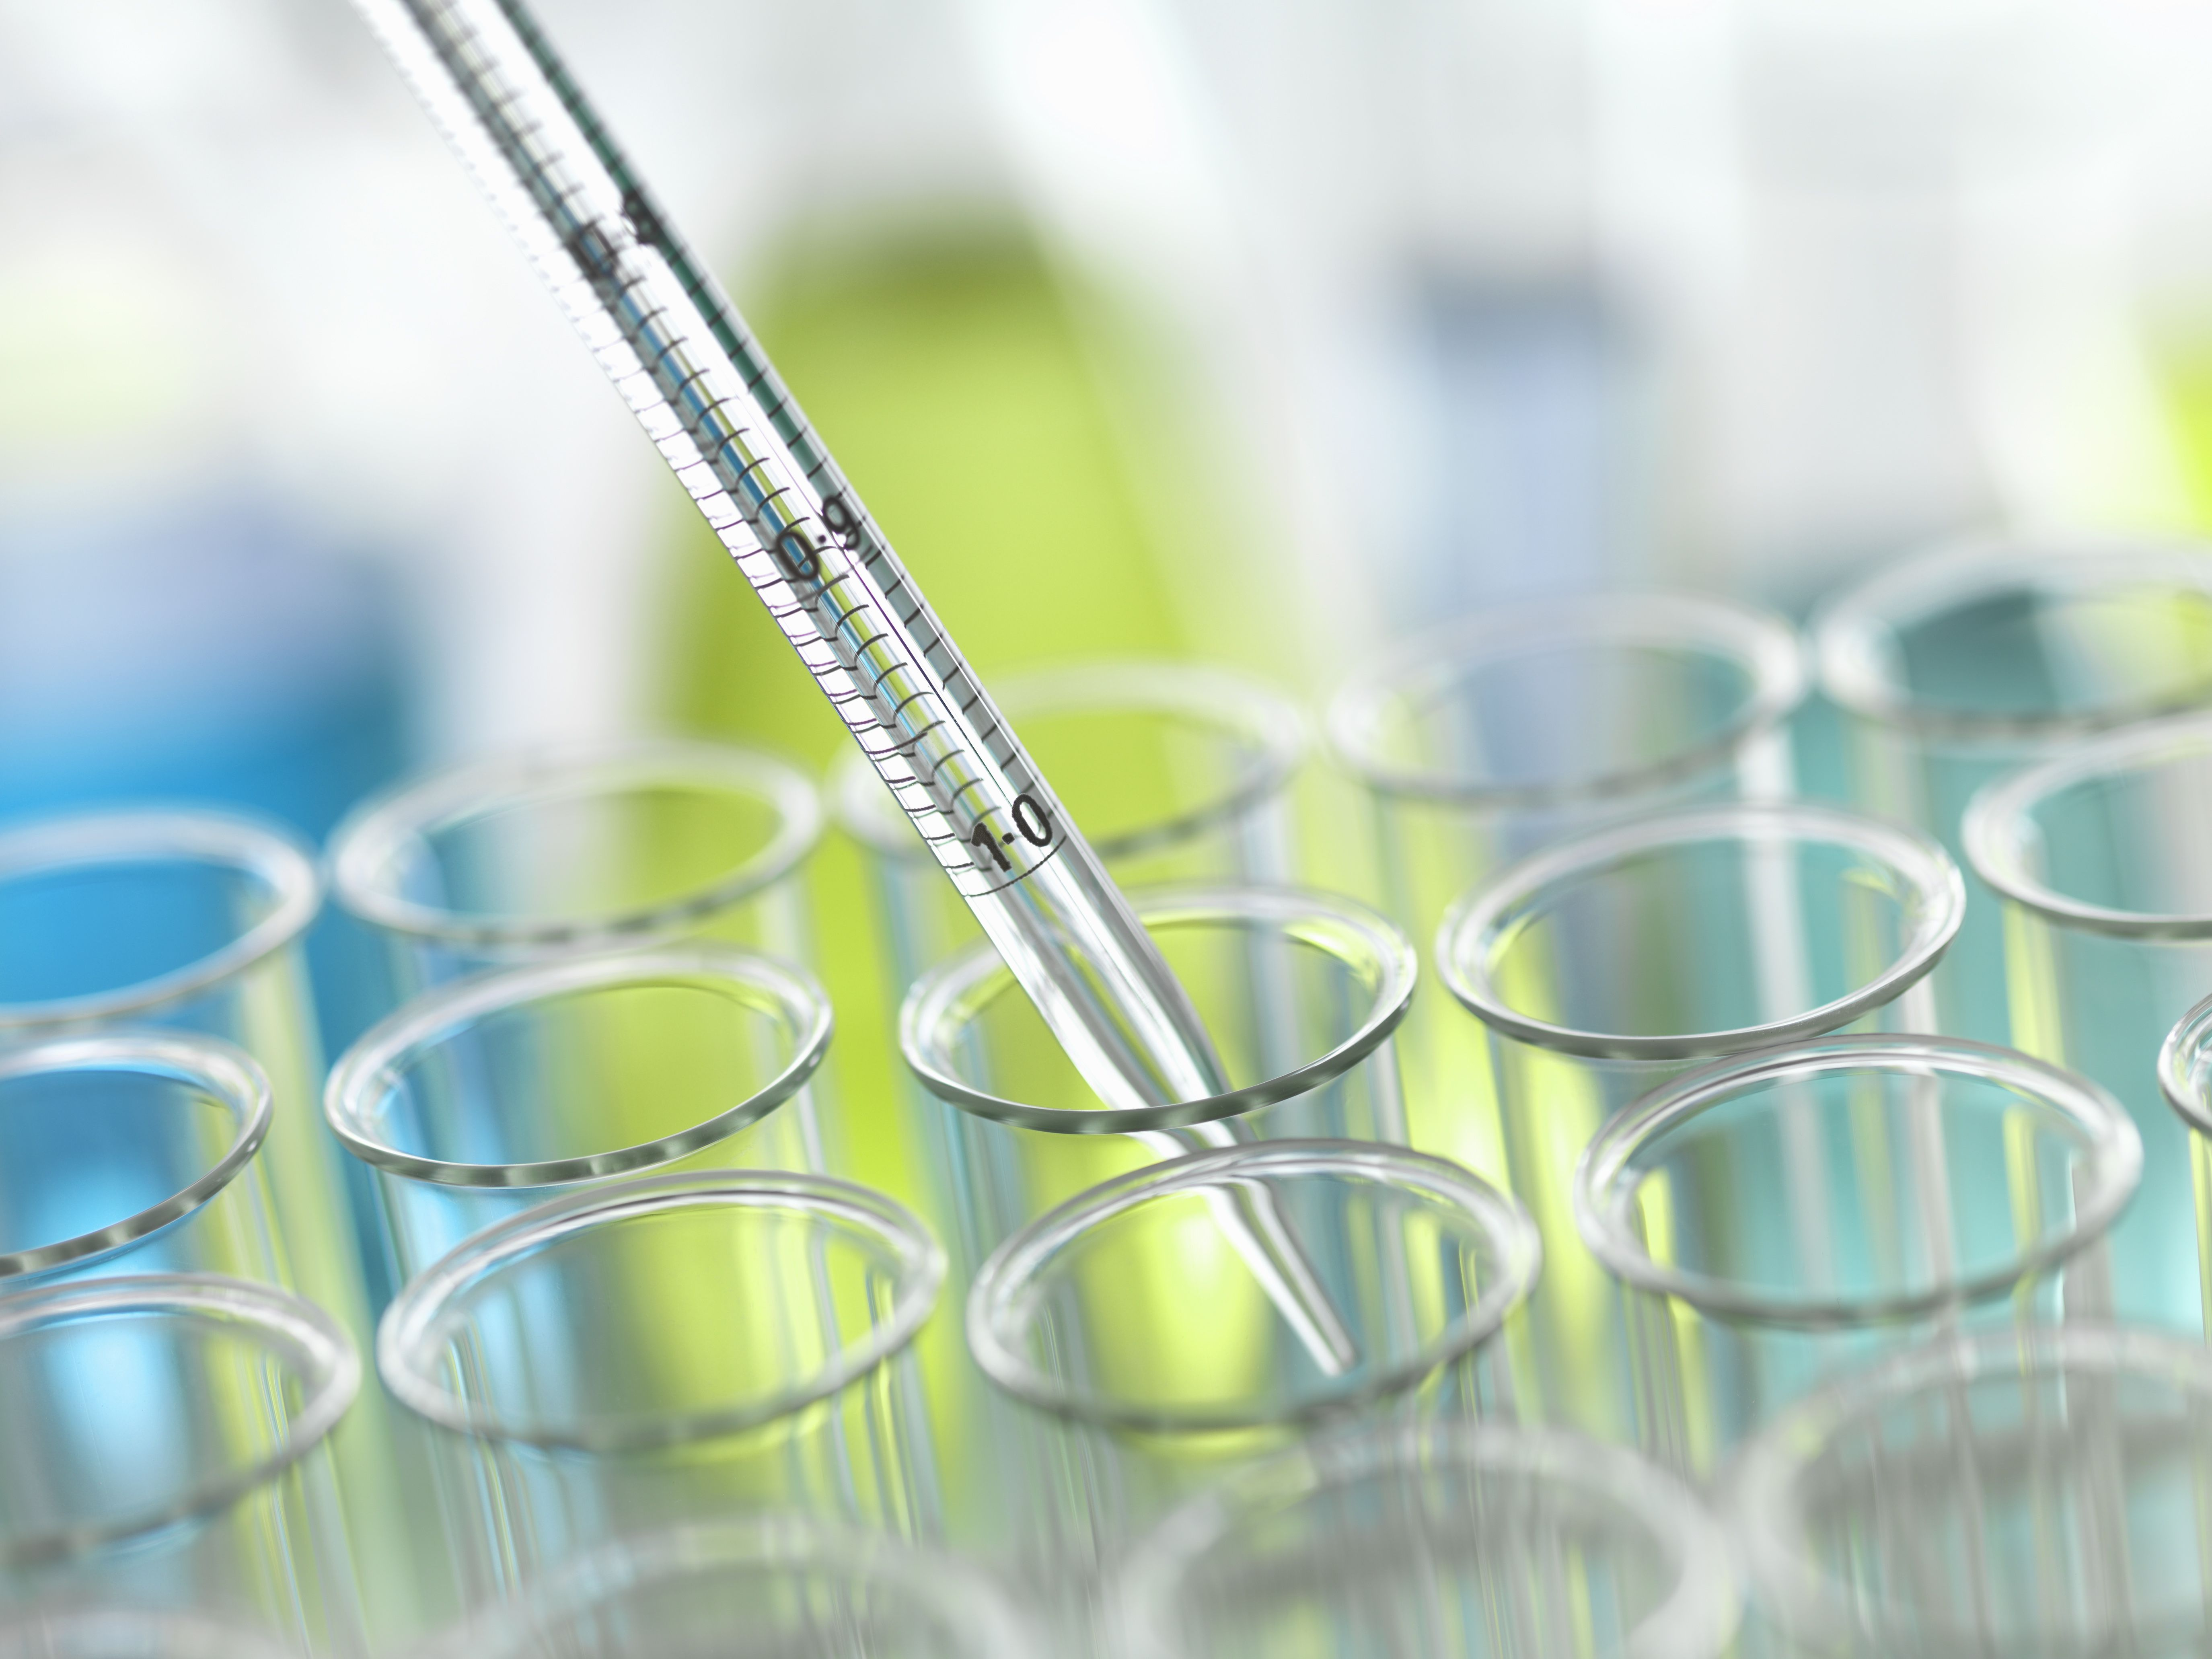 Qualitative analysis determines the composition of a sample.